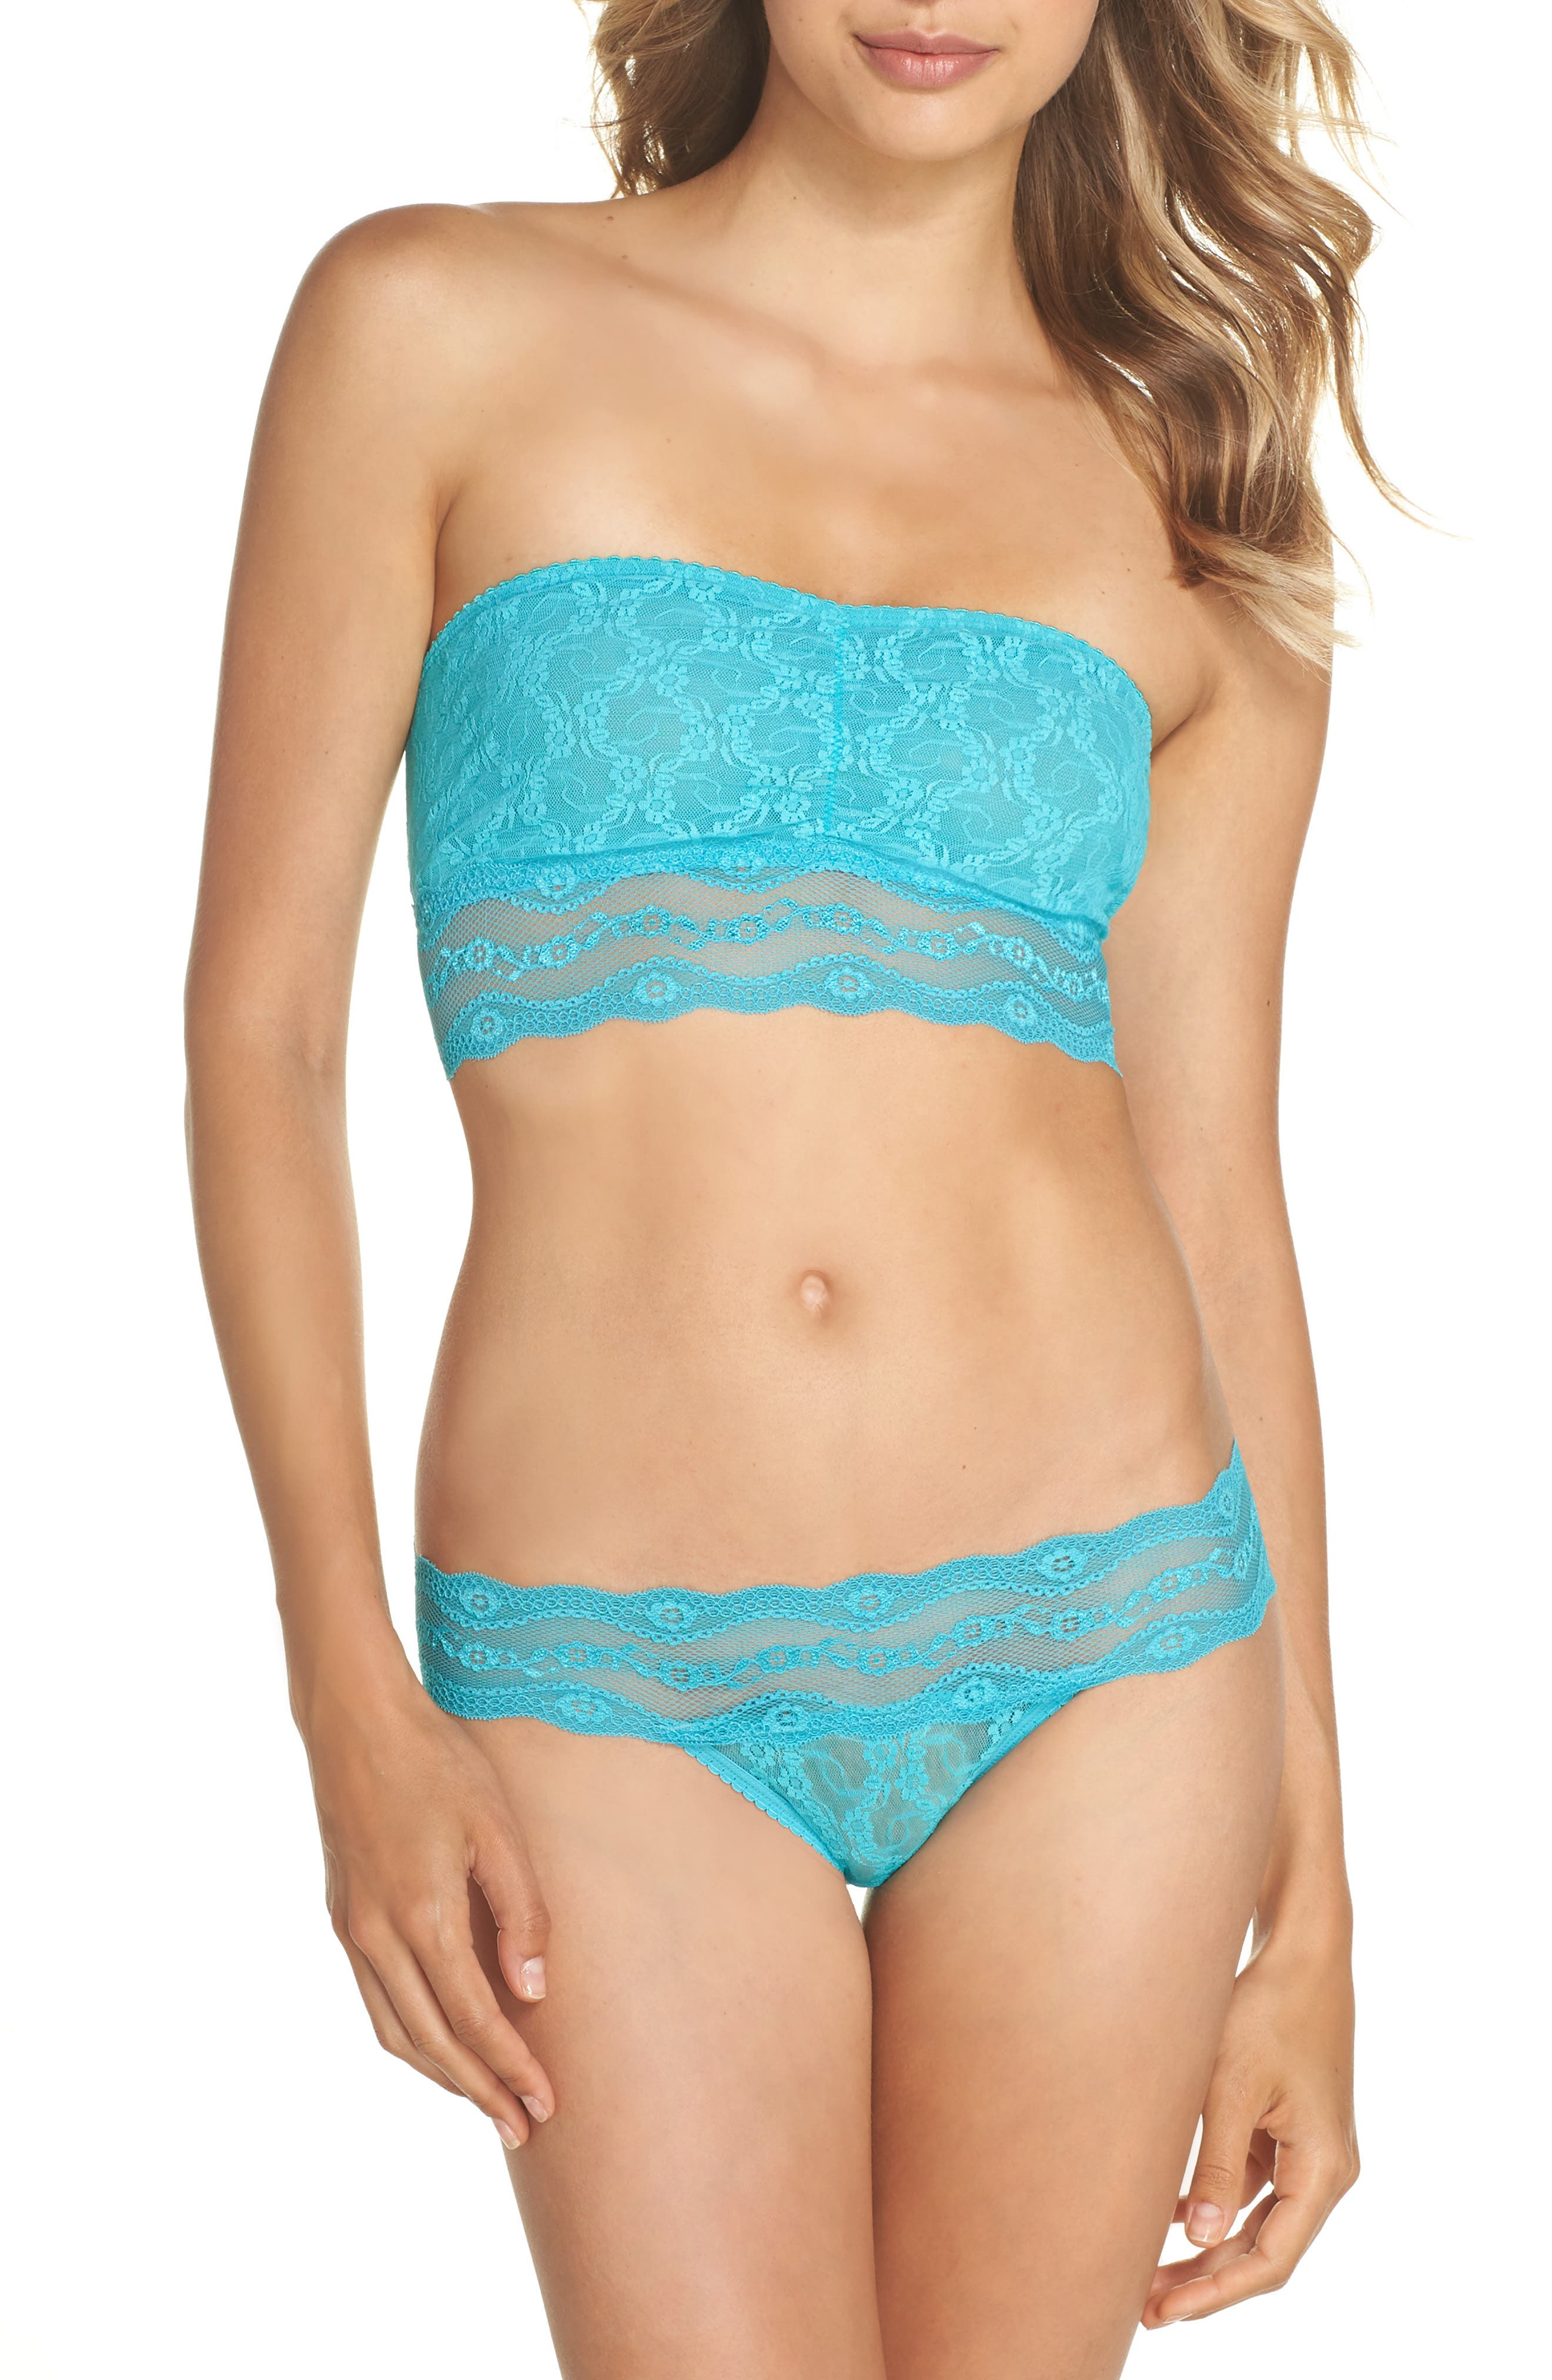 'Lace Kiss' Bikini,                             Alternate thumbnail 4, color,                             Peacock Blue